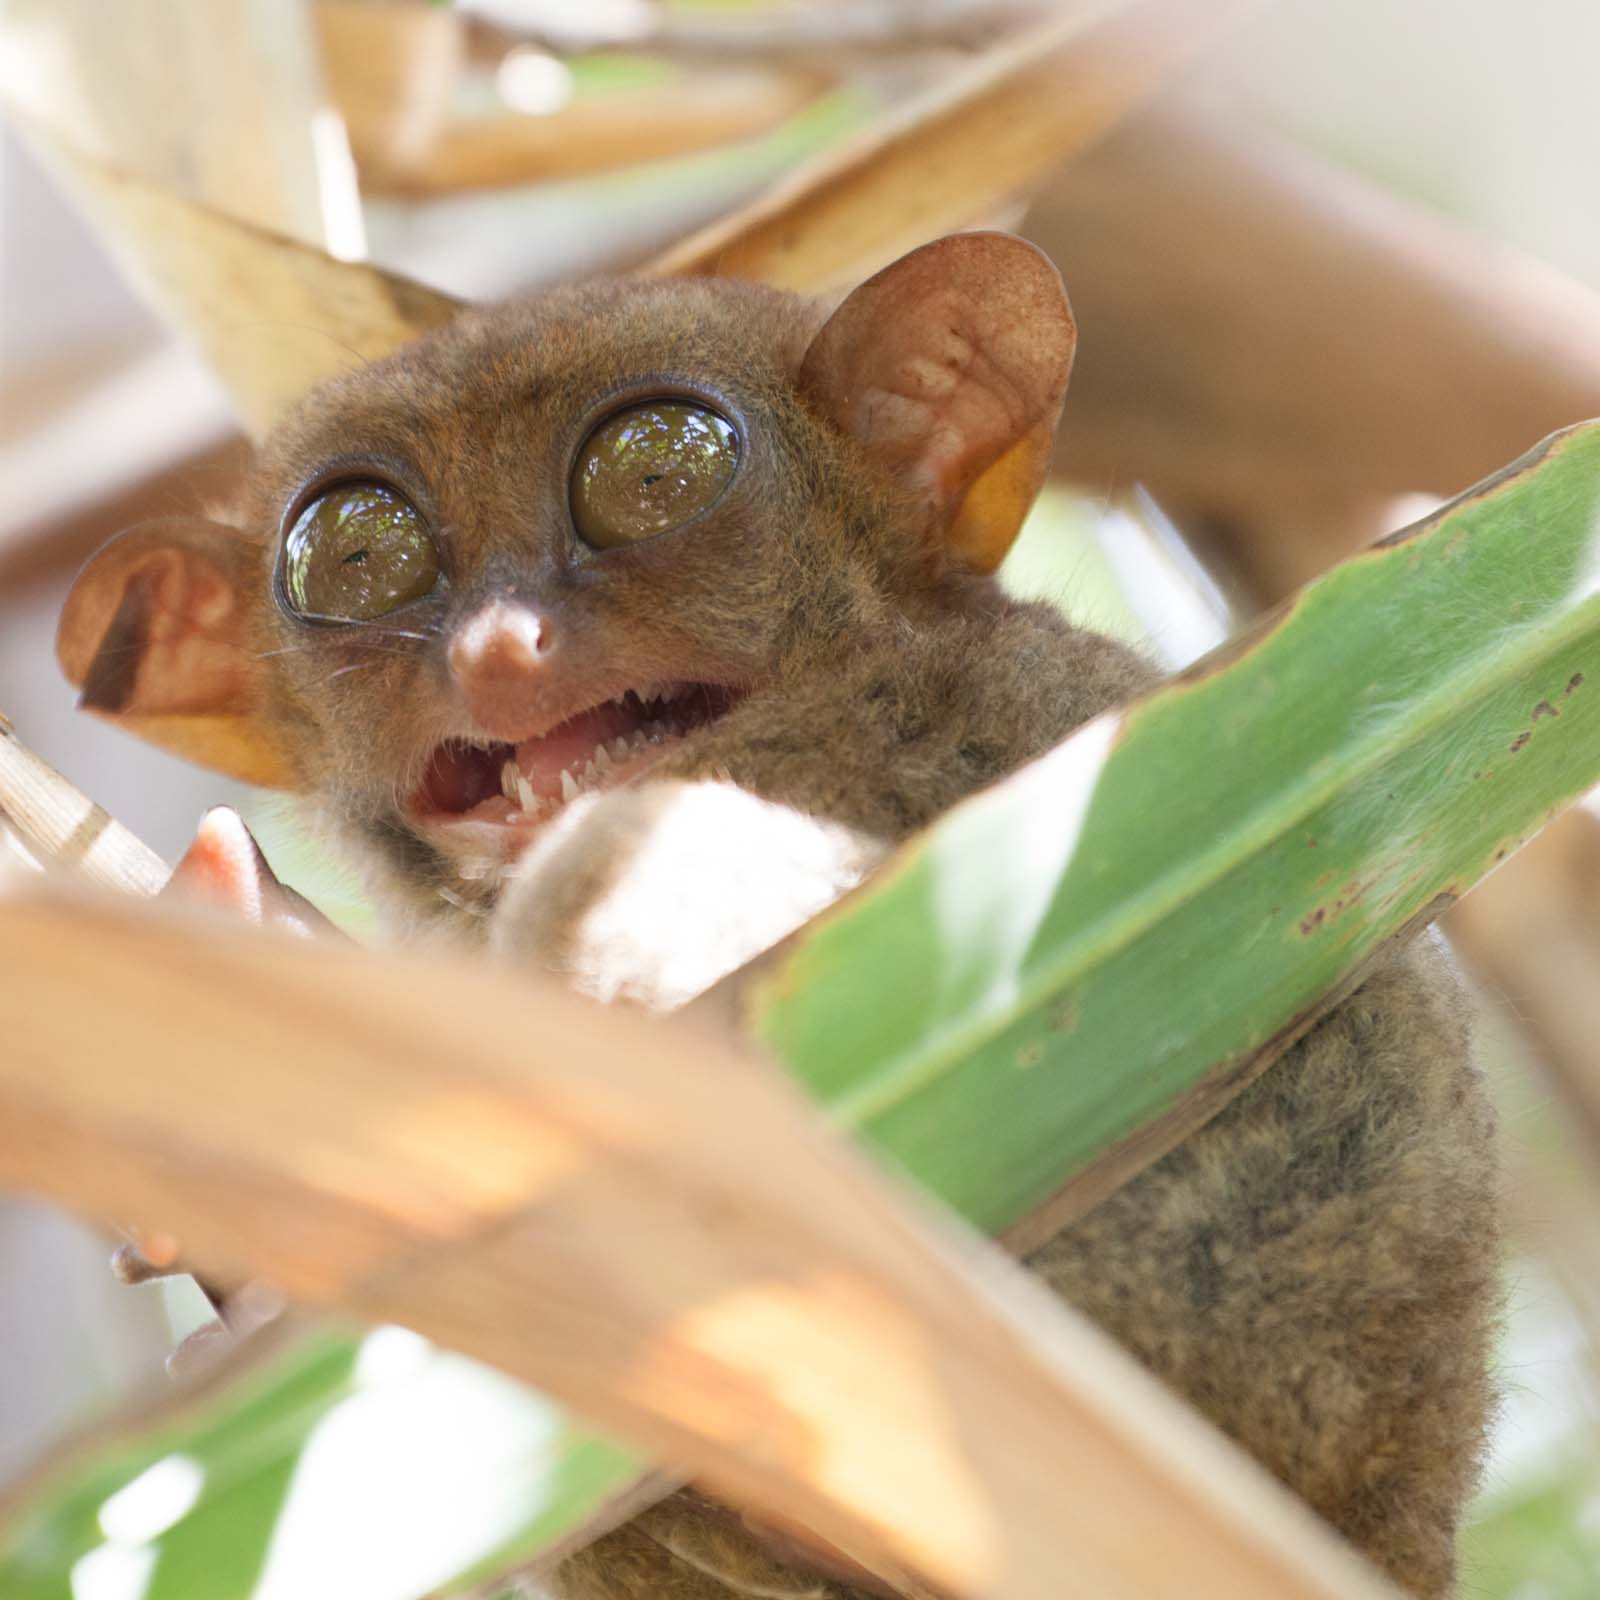 Agitated tarsier